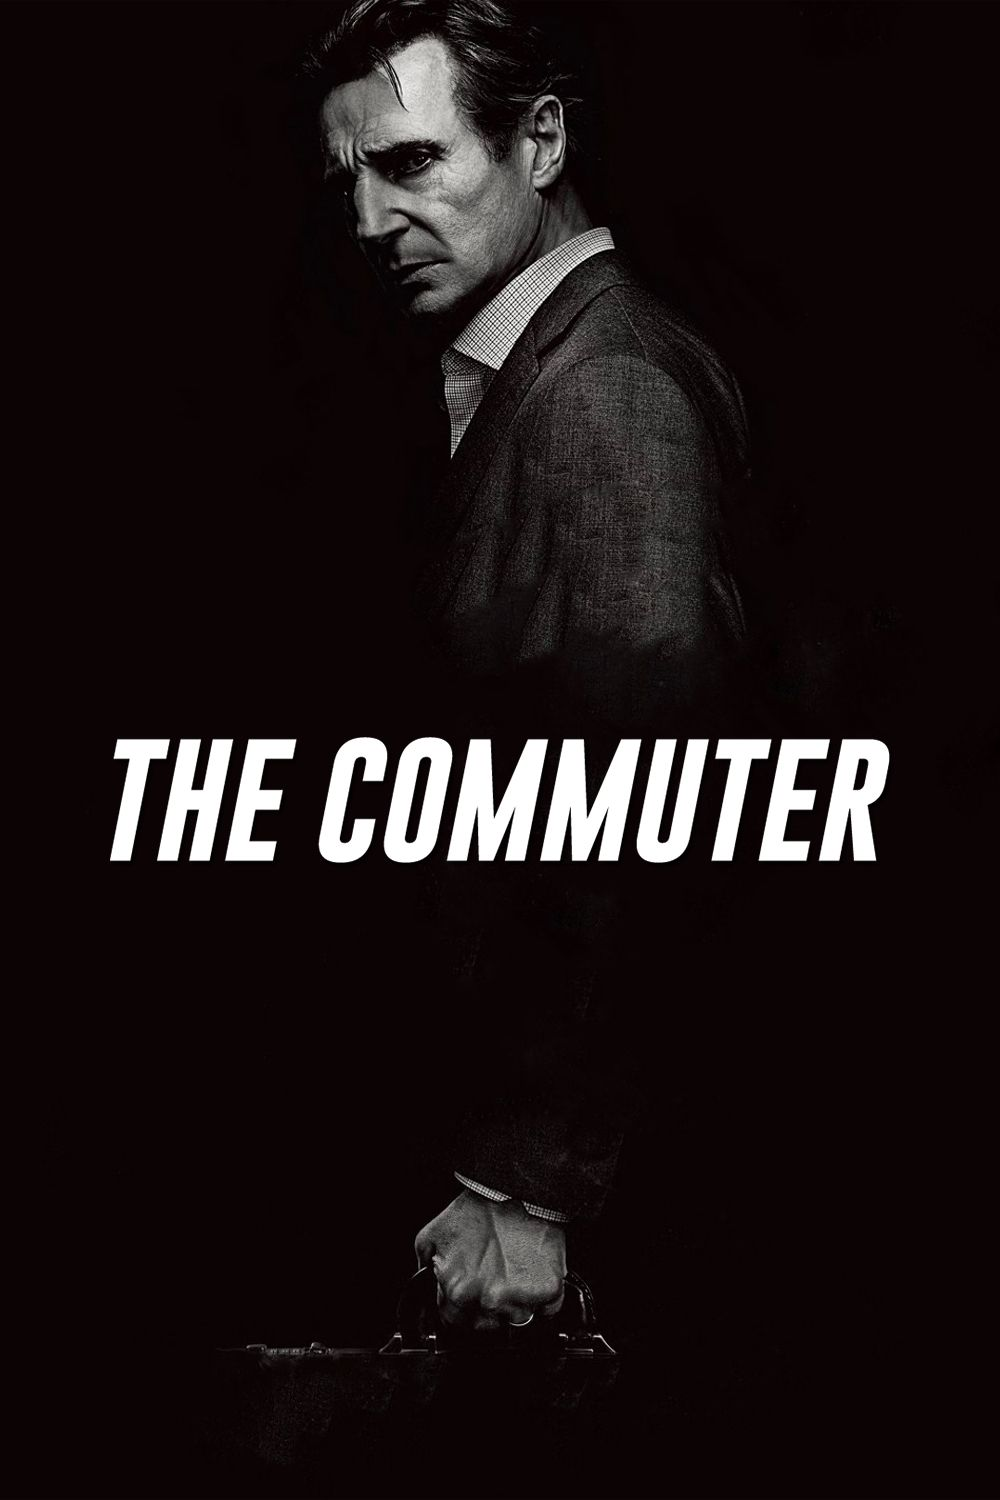 The Commuter Movie 2018 Filme Movie Posters Movies Film